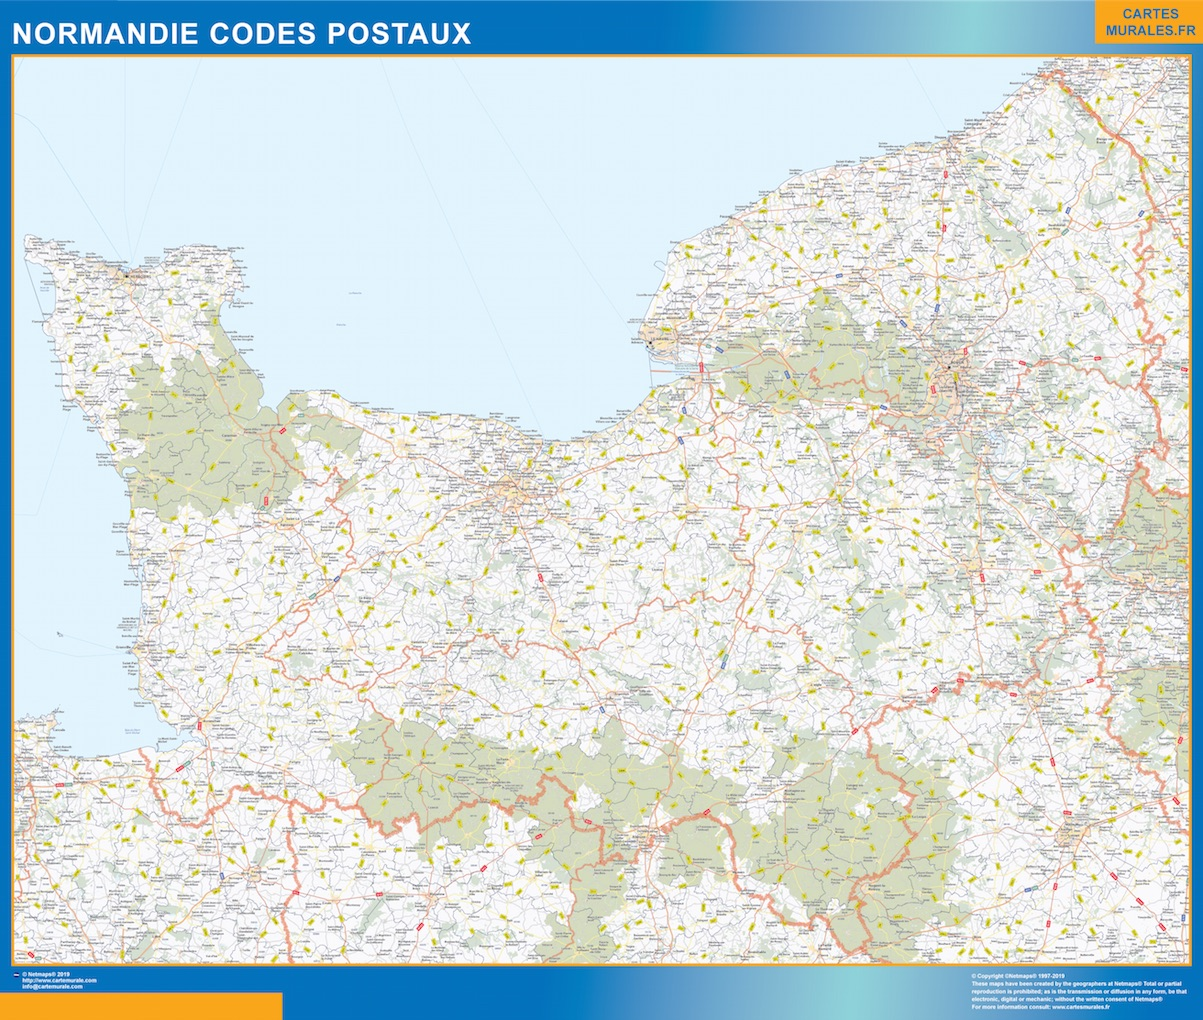 Carte Normandie codes postaux